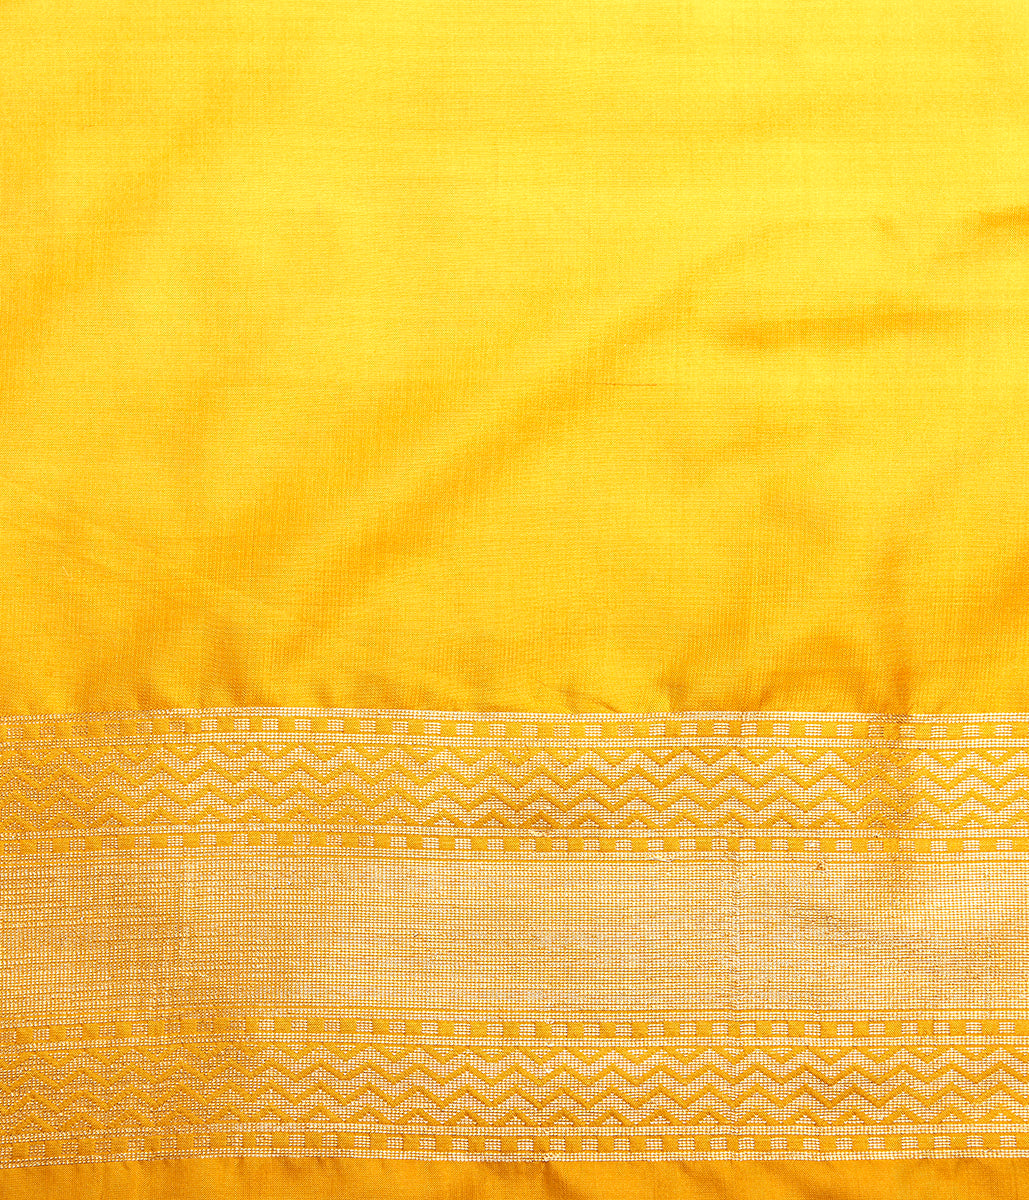 Handwoven Banarasi Patola saree in yellow